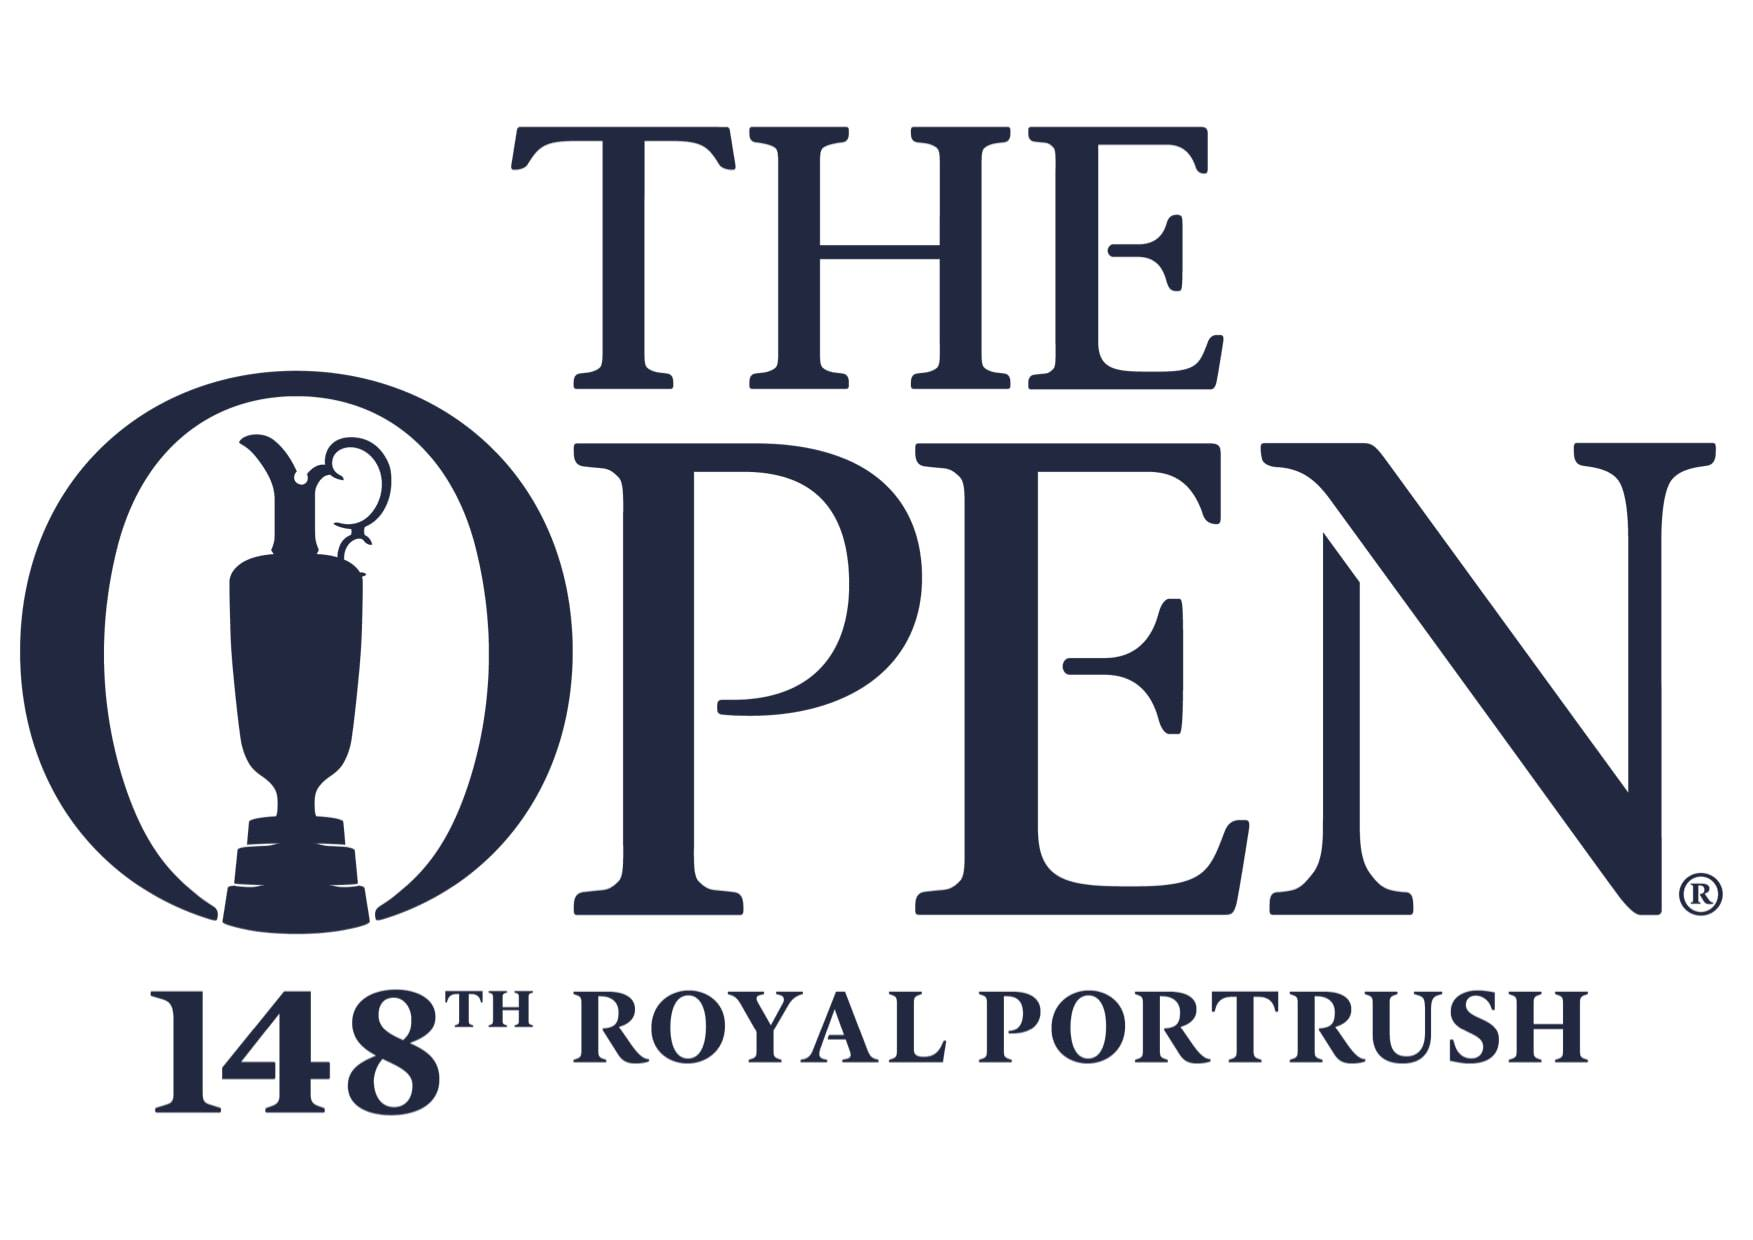 Less than 100 days until this year's Open at Royal Portrush